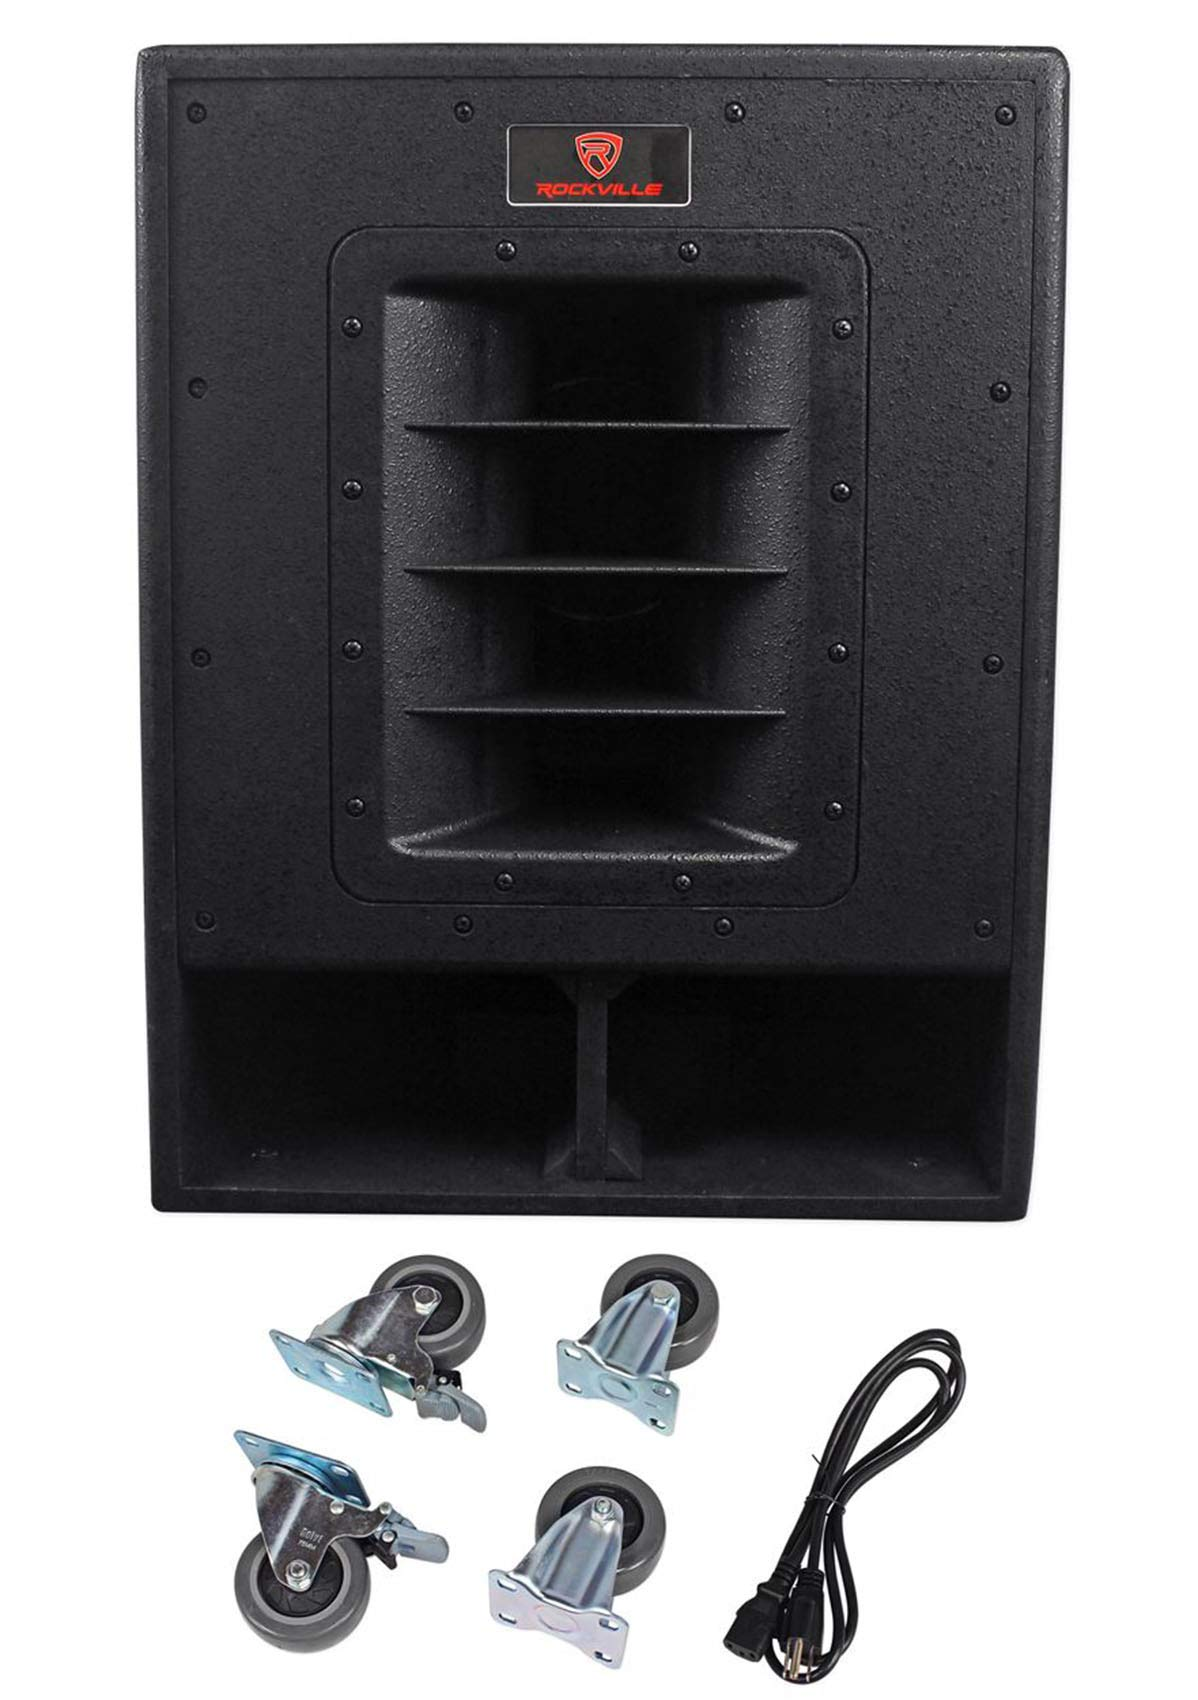 Rockville RBG15FA 15'' 2400 Watt Powered Subwoofer Sub for Church Sound Systems by Rockville